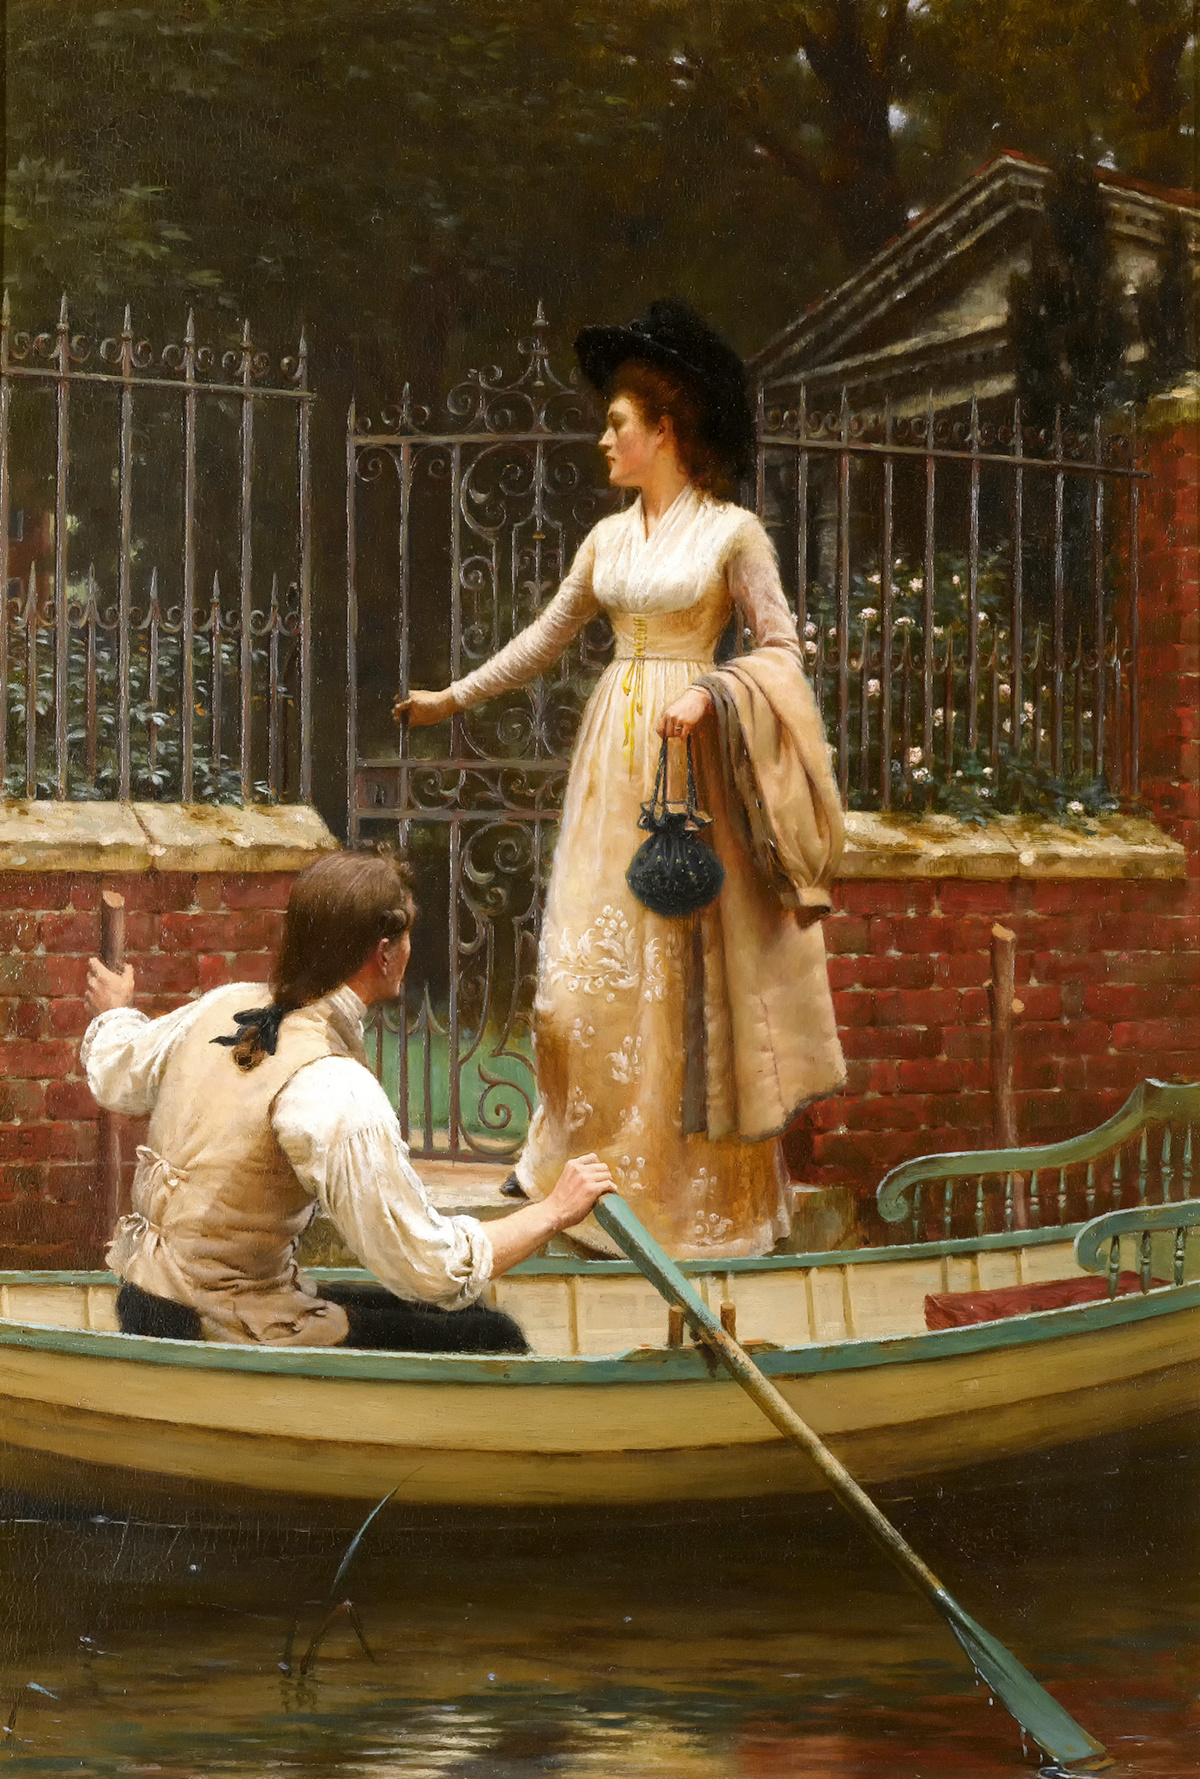 The Elopement by Edmund Blair Leighton